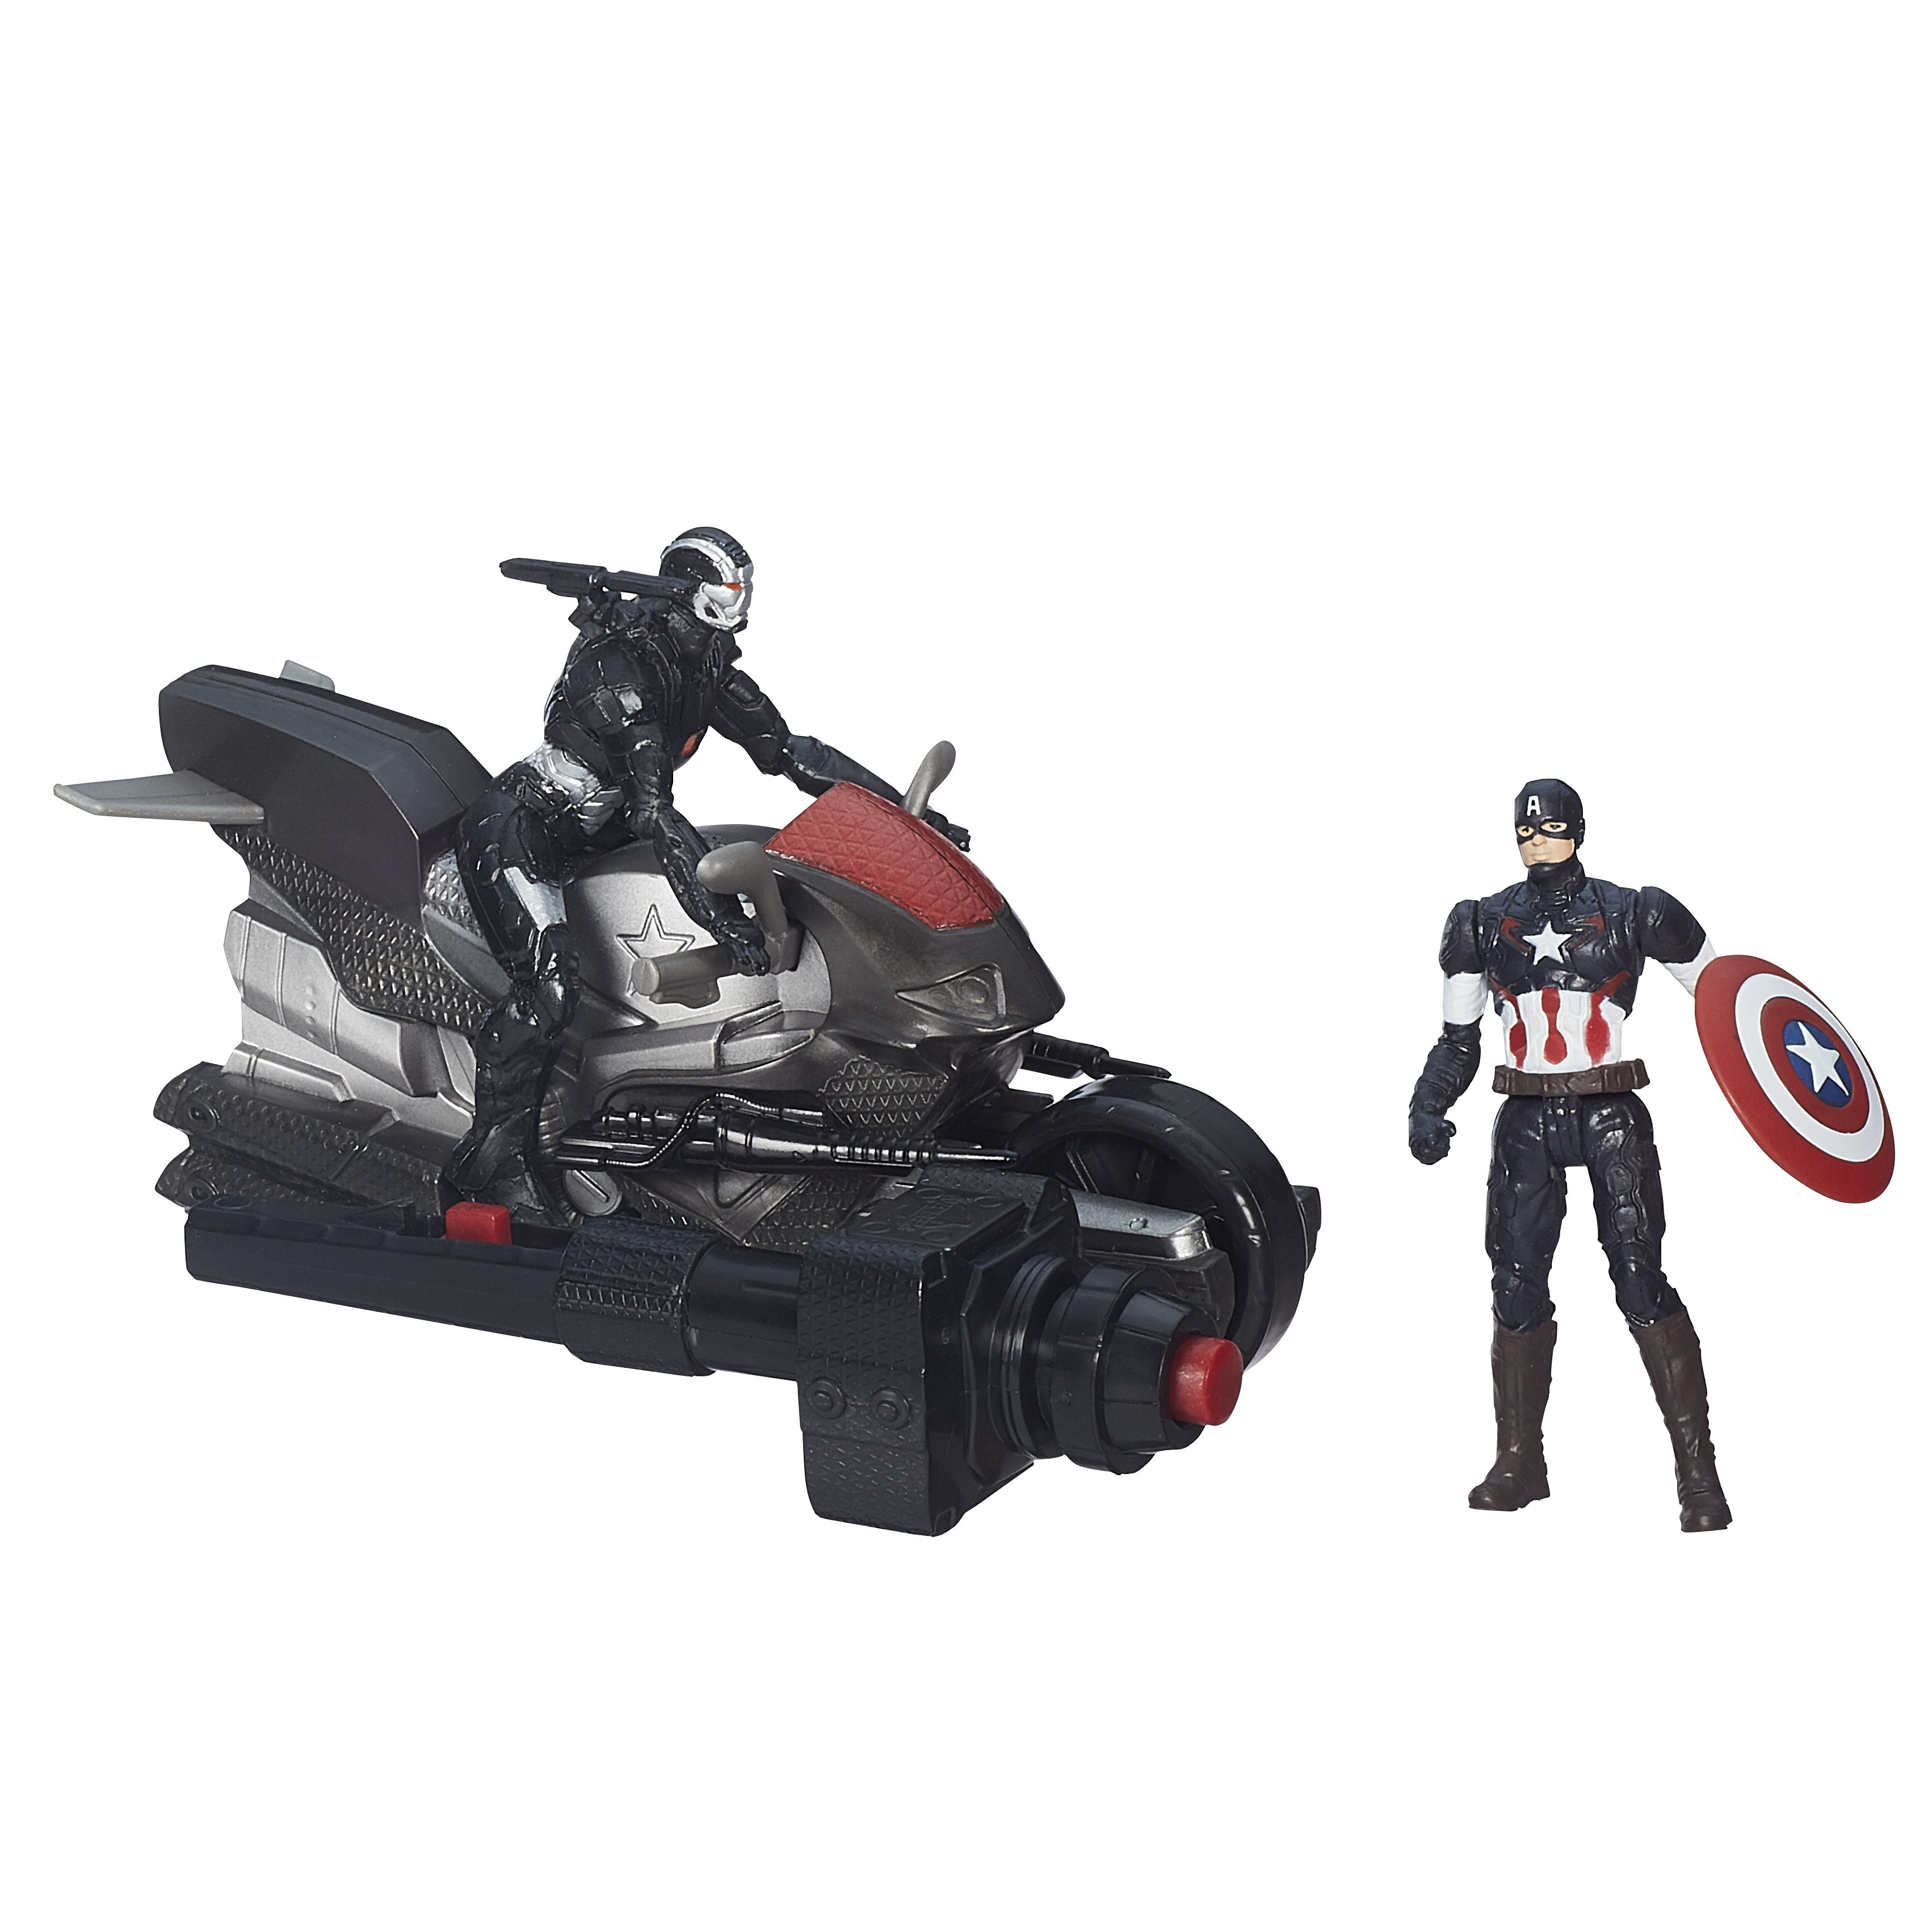 Avengers Age of Ultron Toys - Hasbro Releases First Official Images